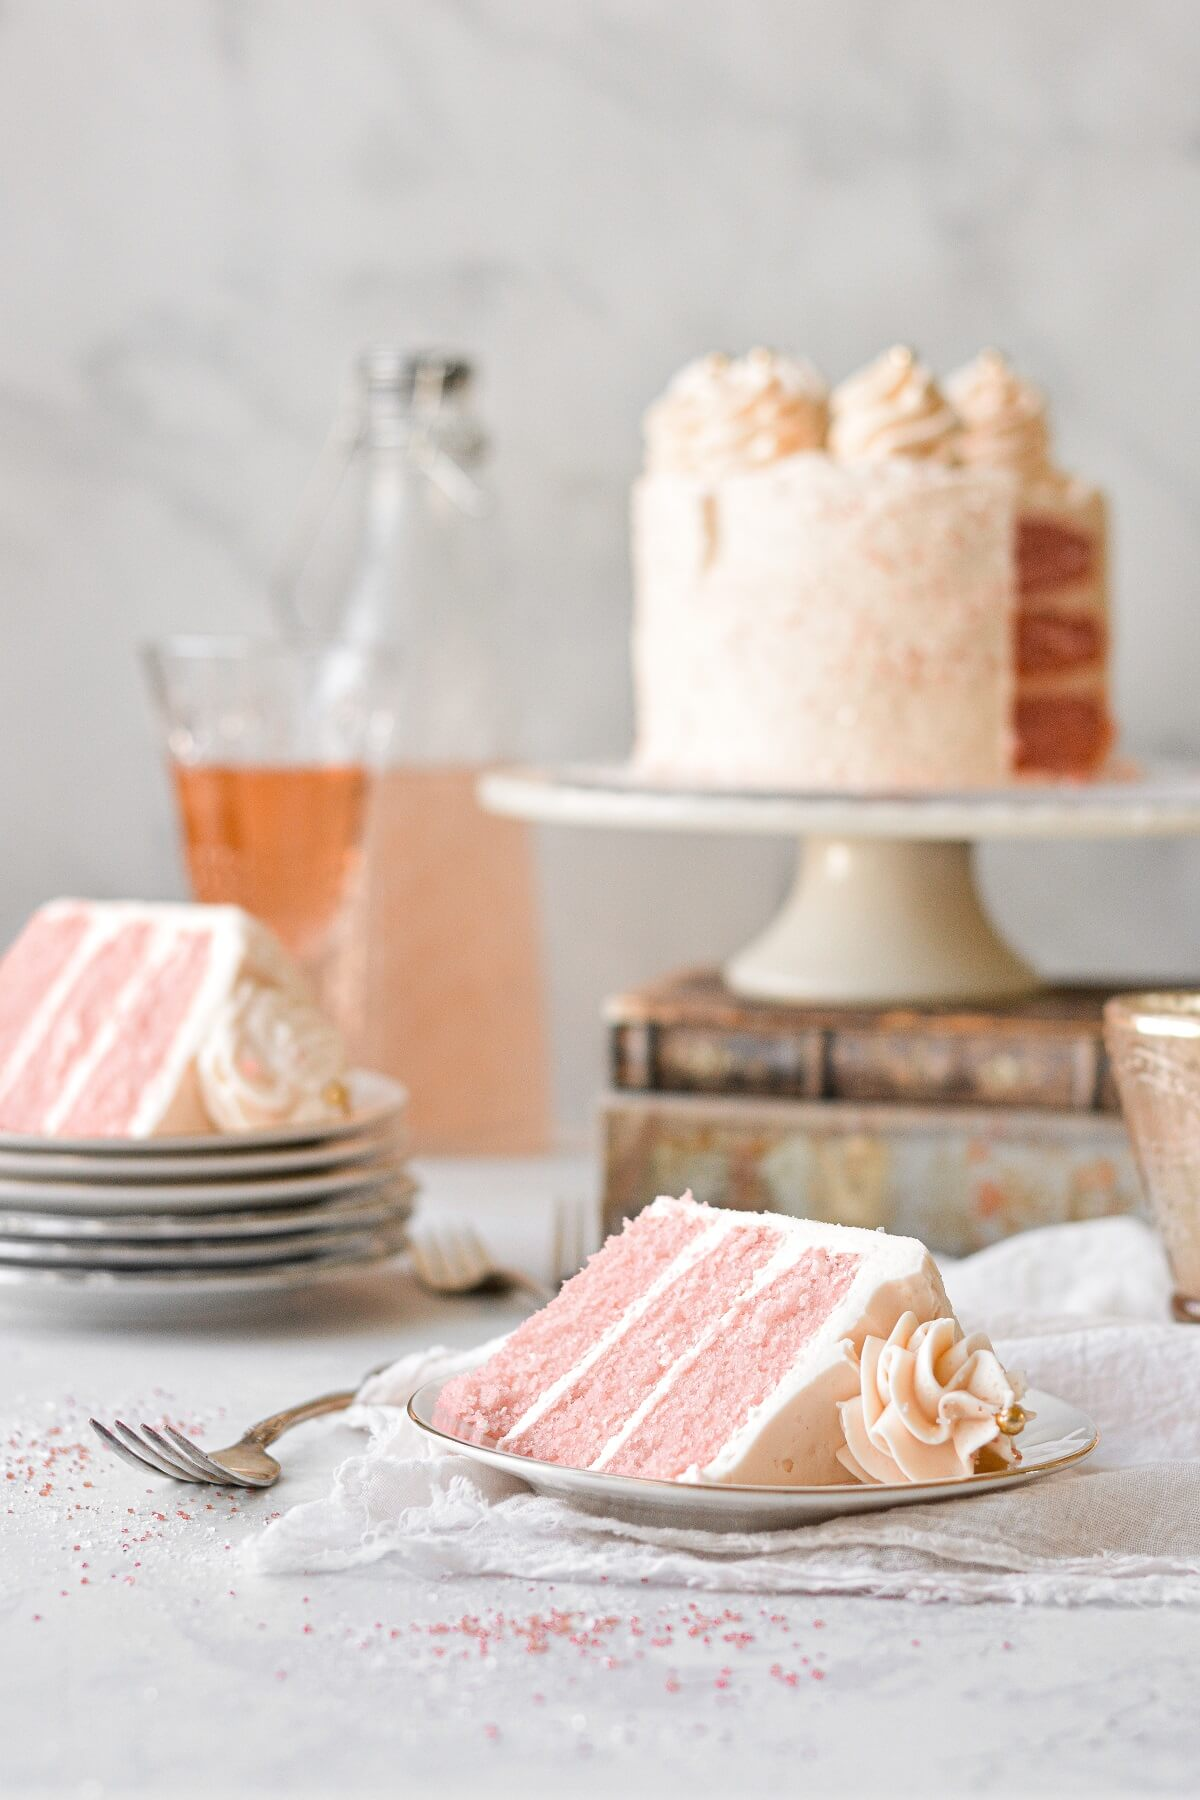 Slices of pink champagne cake.